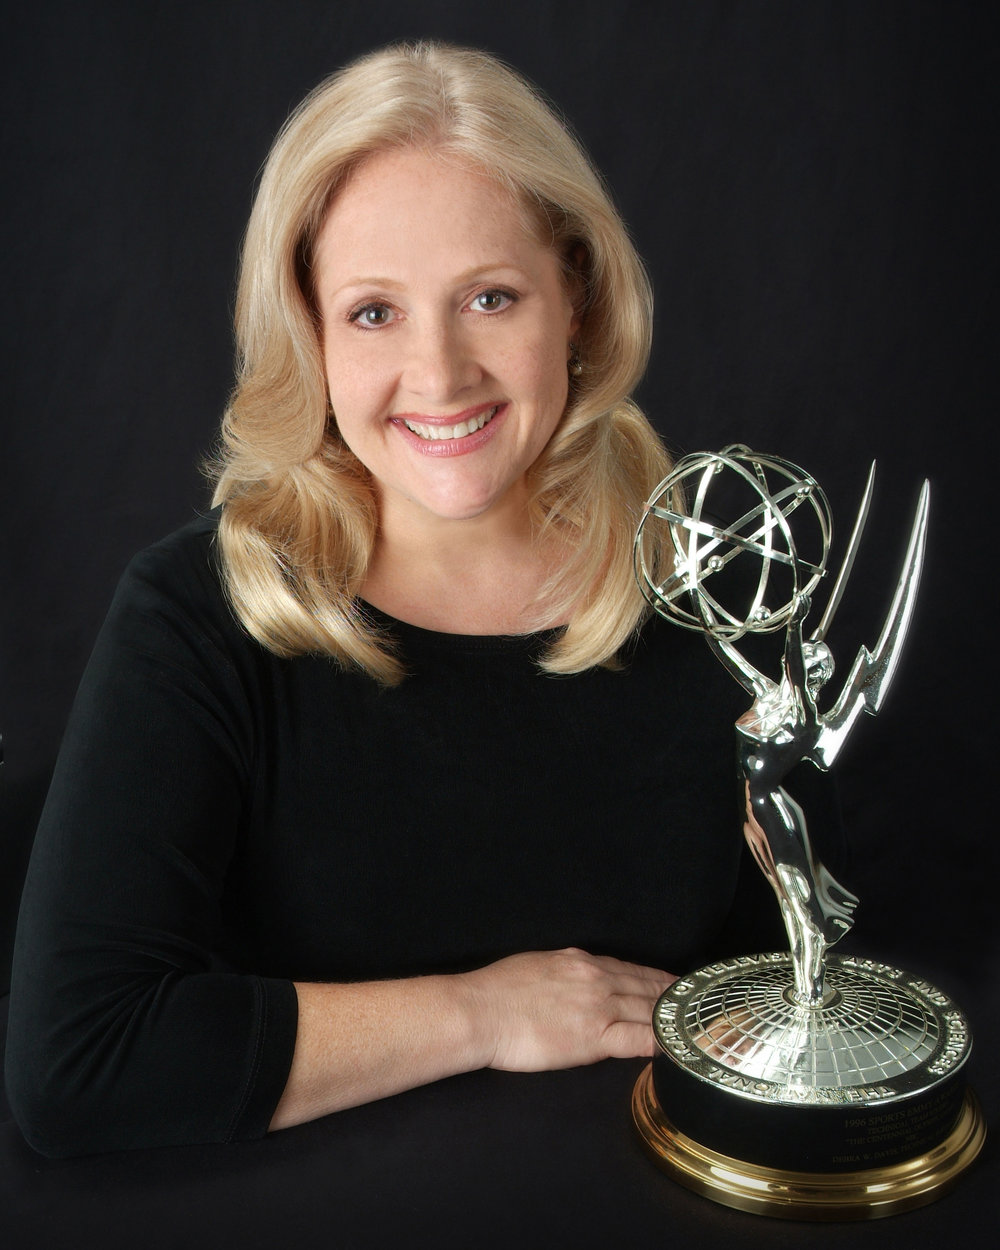 Debra Davis is an Emmy Award Winning Producer, creating groundbreaking media solutions at high profile events for broadcast, and IPTV, specializing in events, festivals, live music, television series, award shows, corporate entertainment, meetings and galas. -